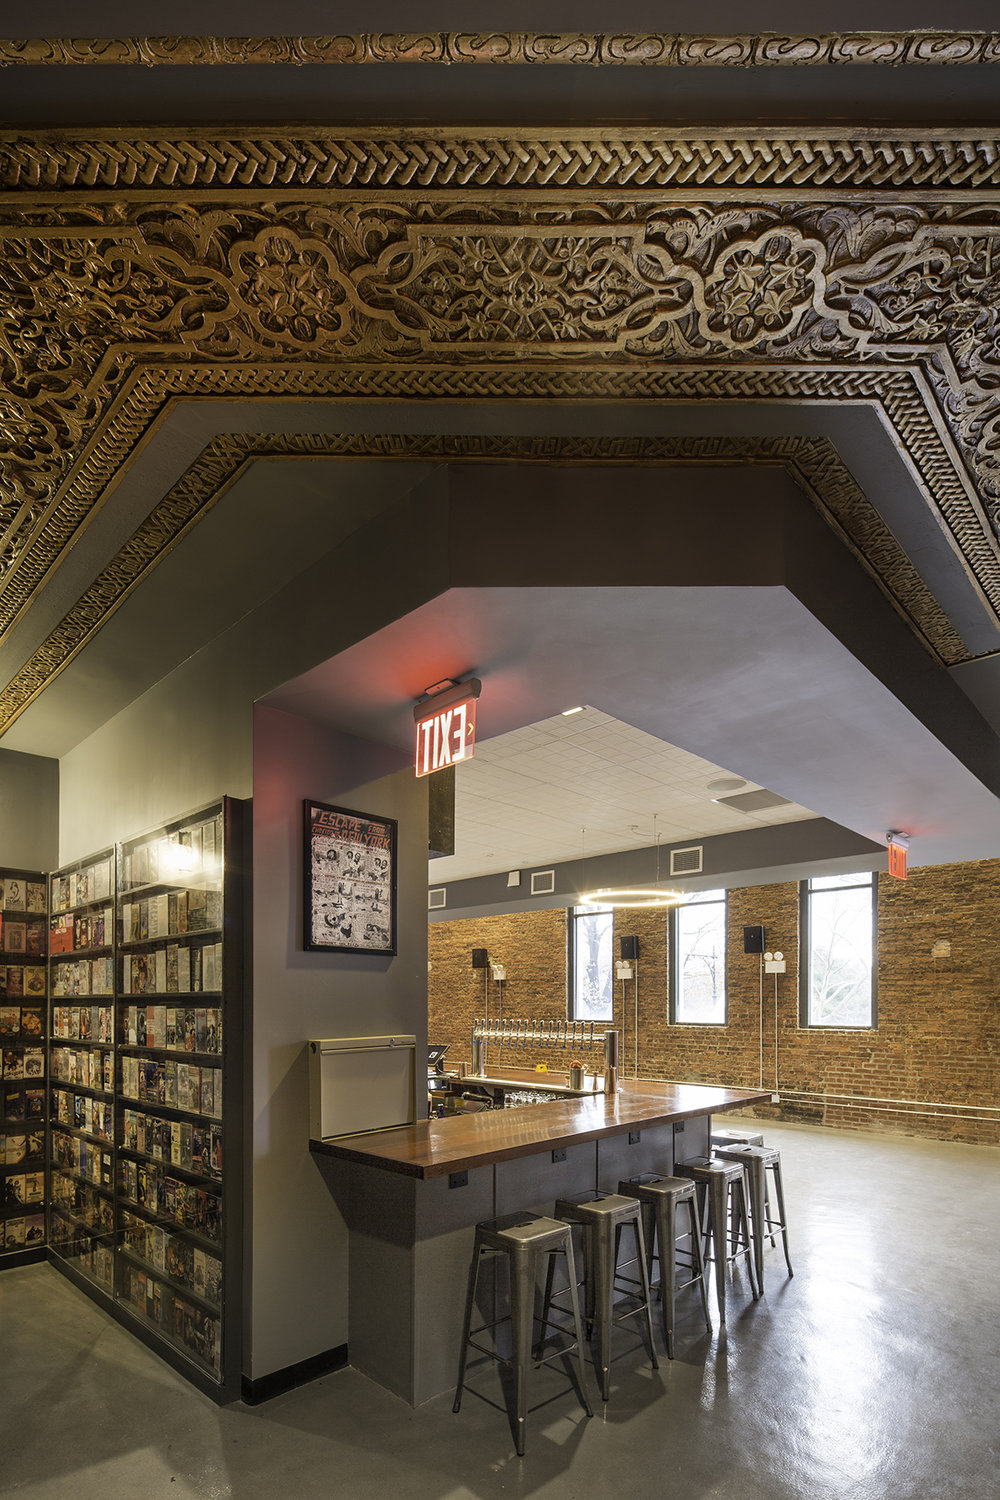 The bar and interior architecture of the Nitehawk Cinema at 188 Prospect Park West in Brooklyn with MEP-FP engineering services provided by 2LS.